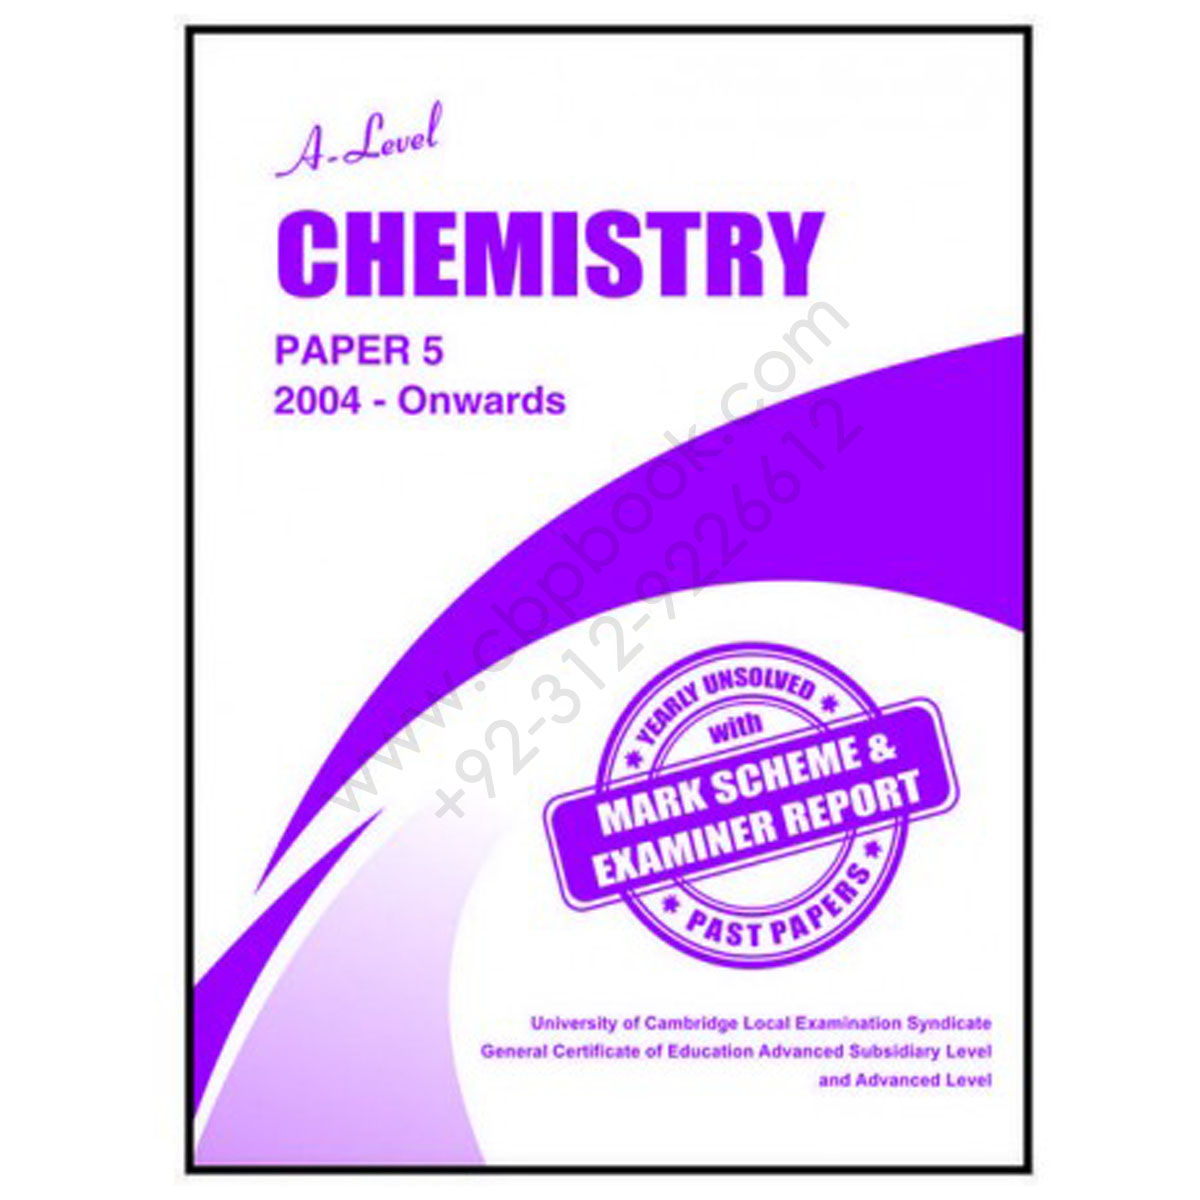 a level chemistry paper 5 yearly unsolved past papers 2004 - june 2016